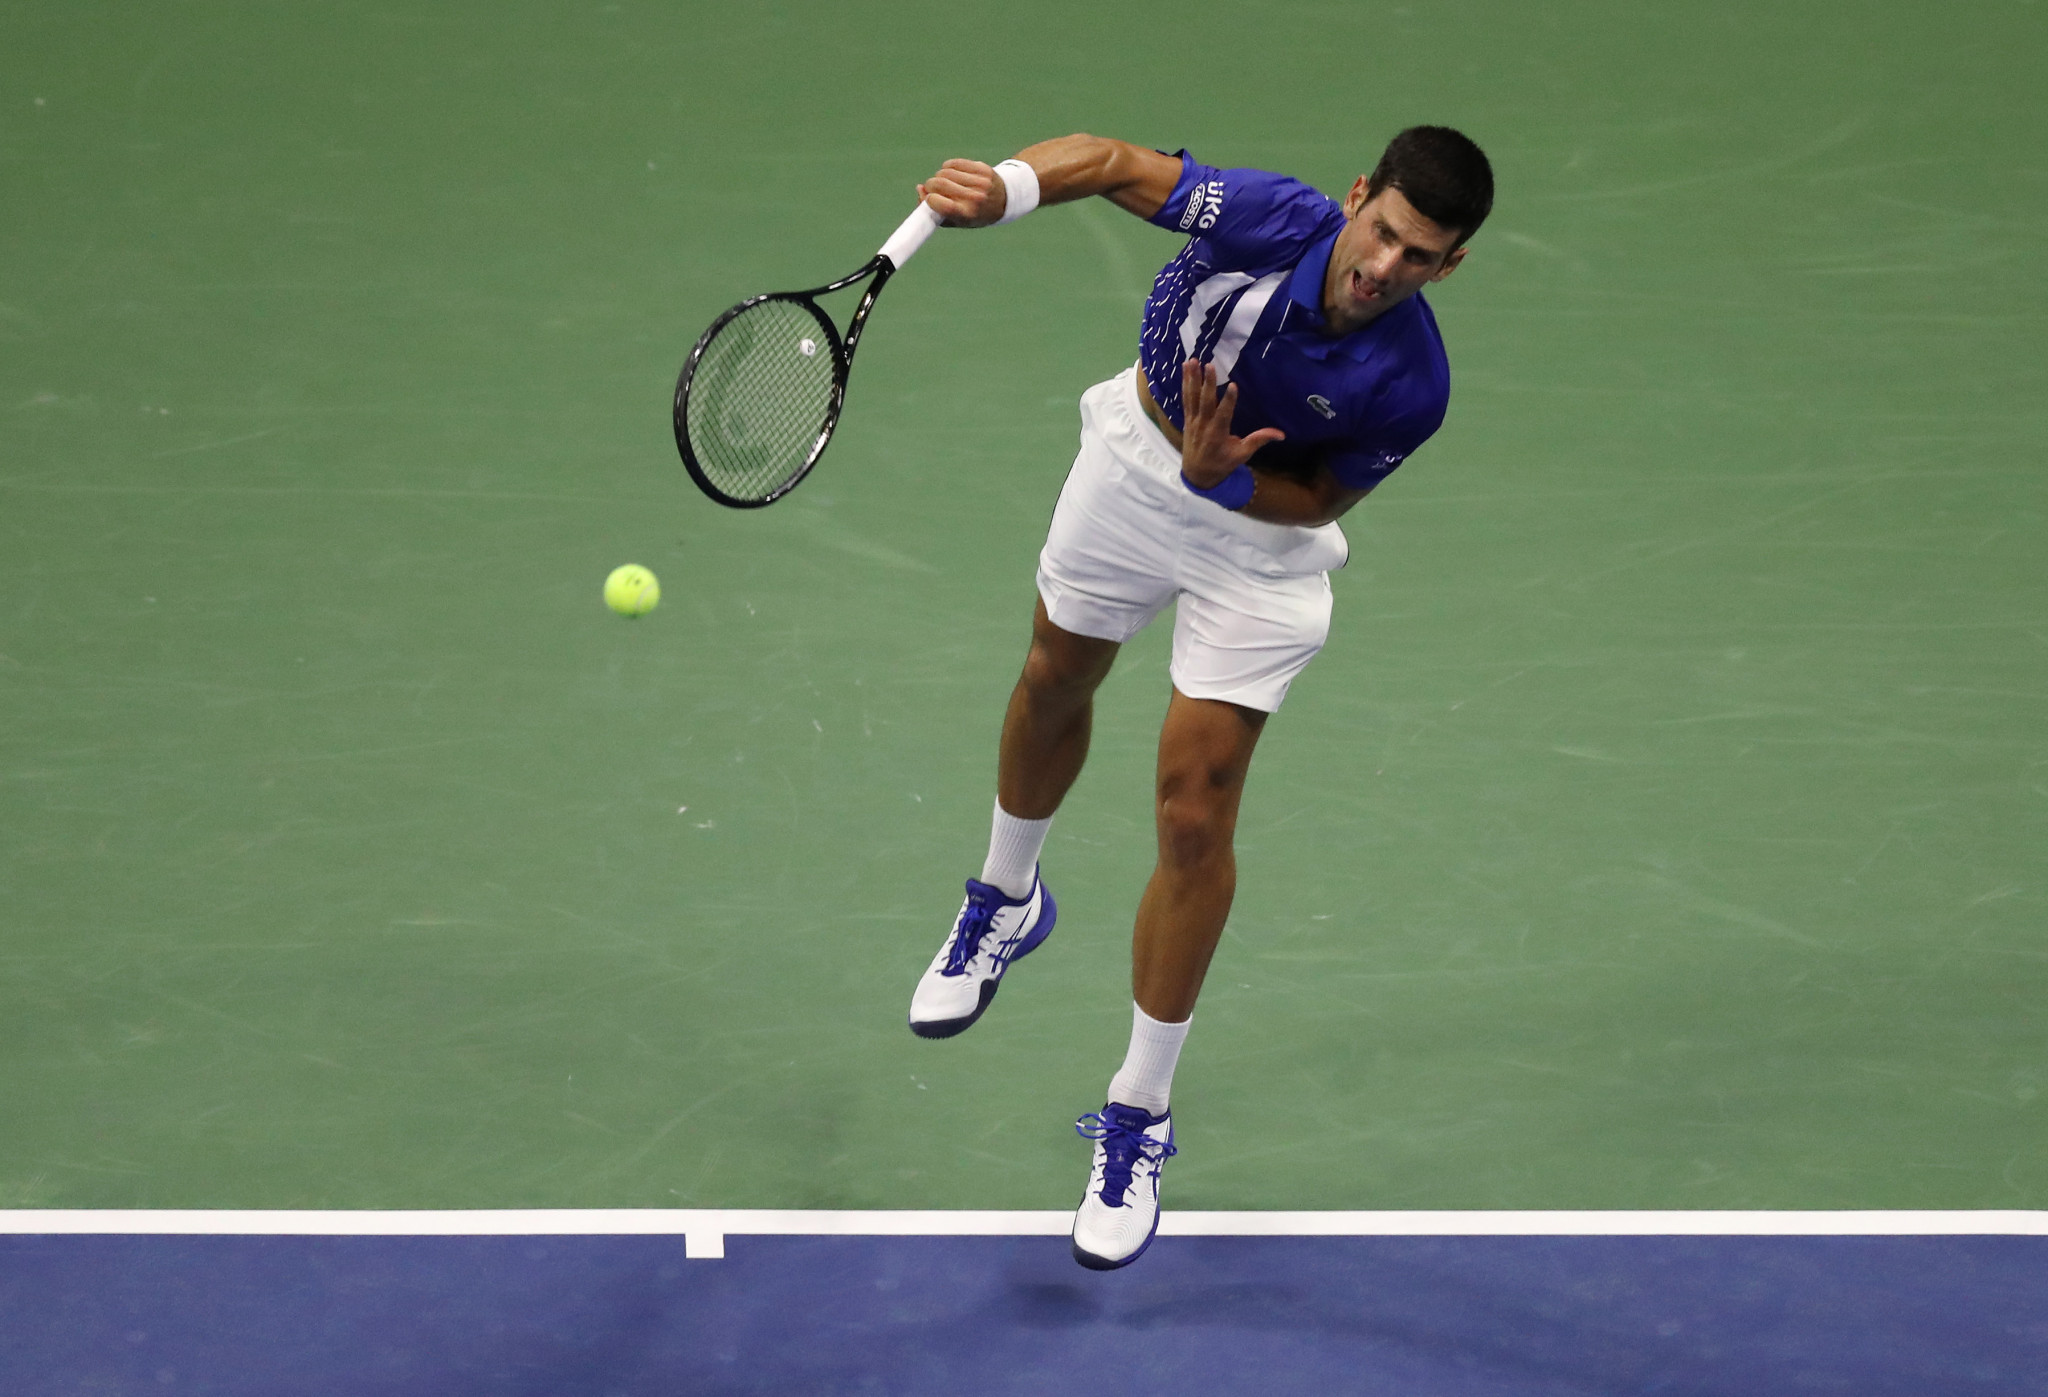 Top seeds reach round two of US Open as second Grand Slam of the year begins